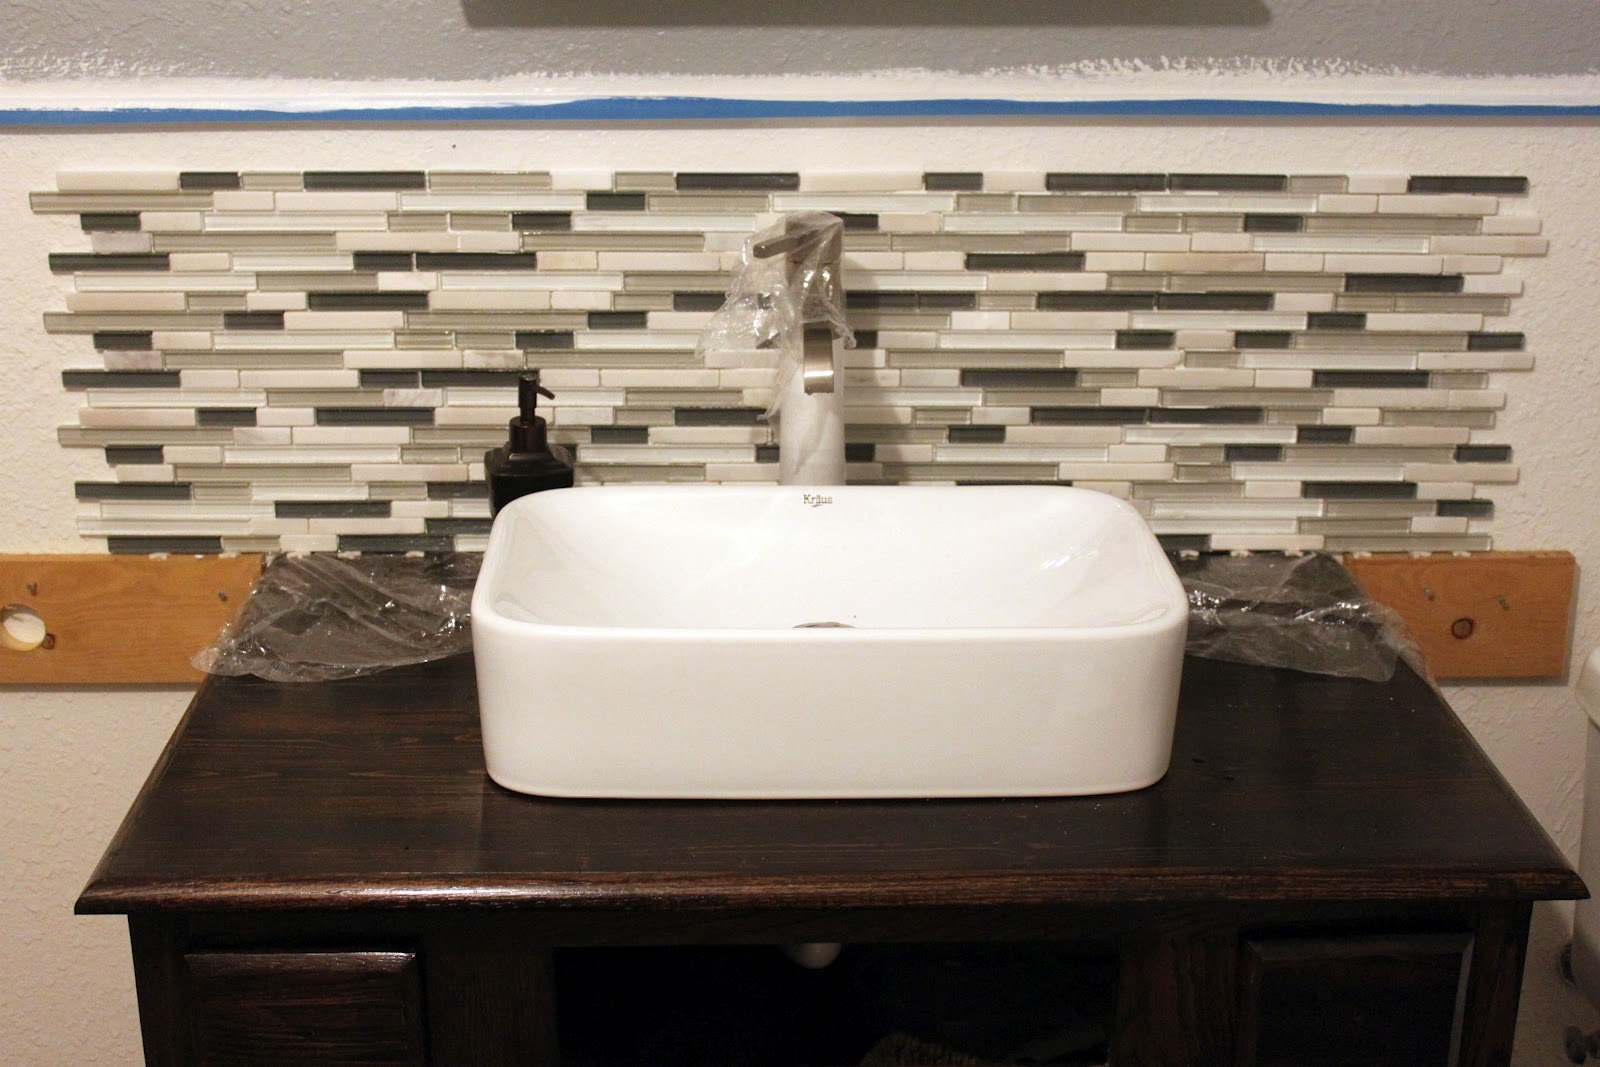 Bathroom Tile Backsplash Edges